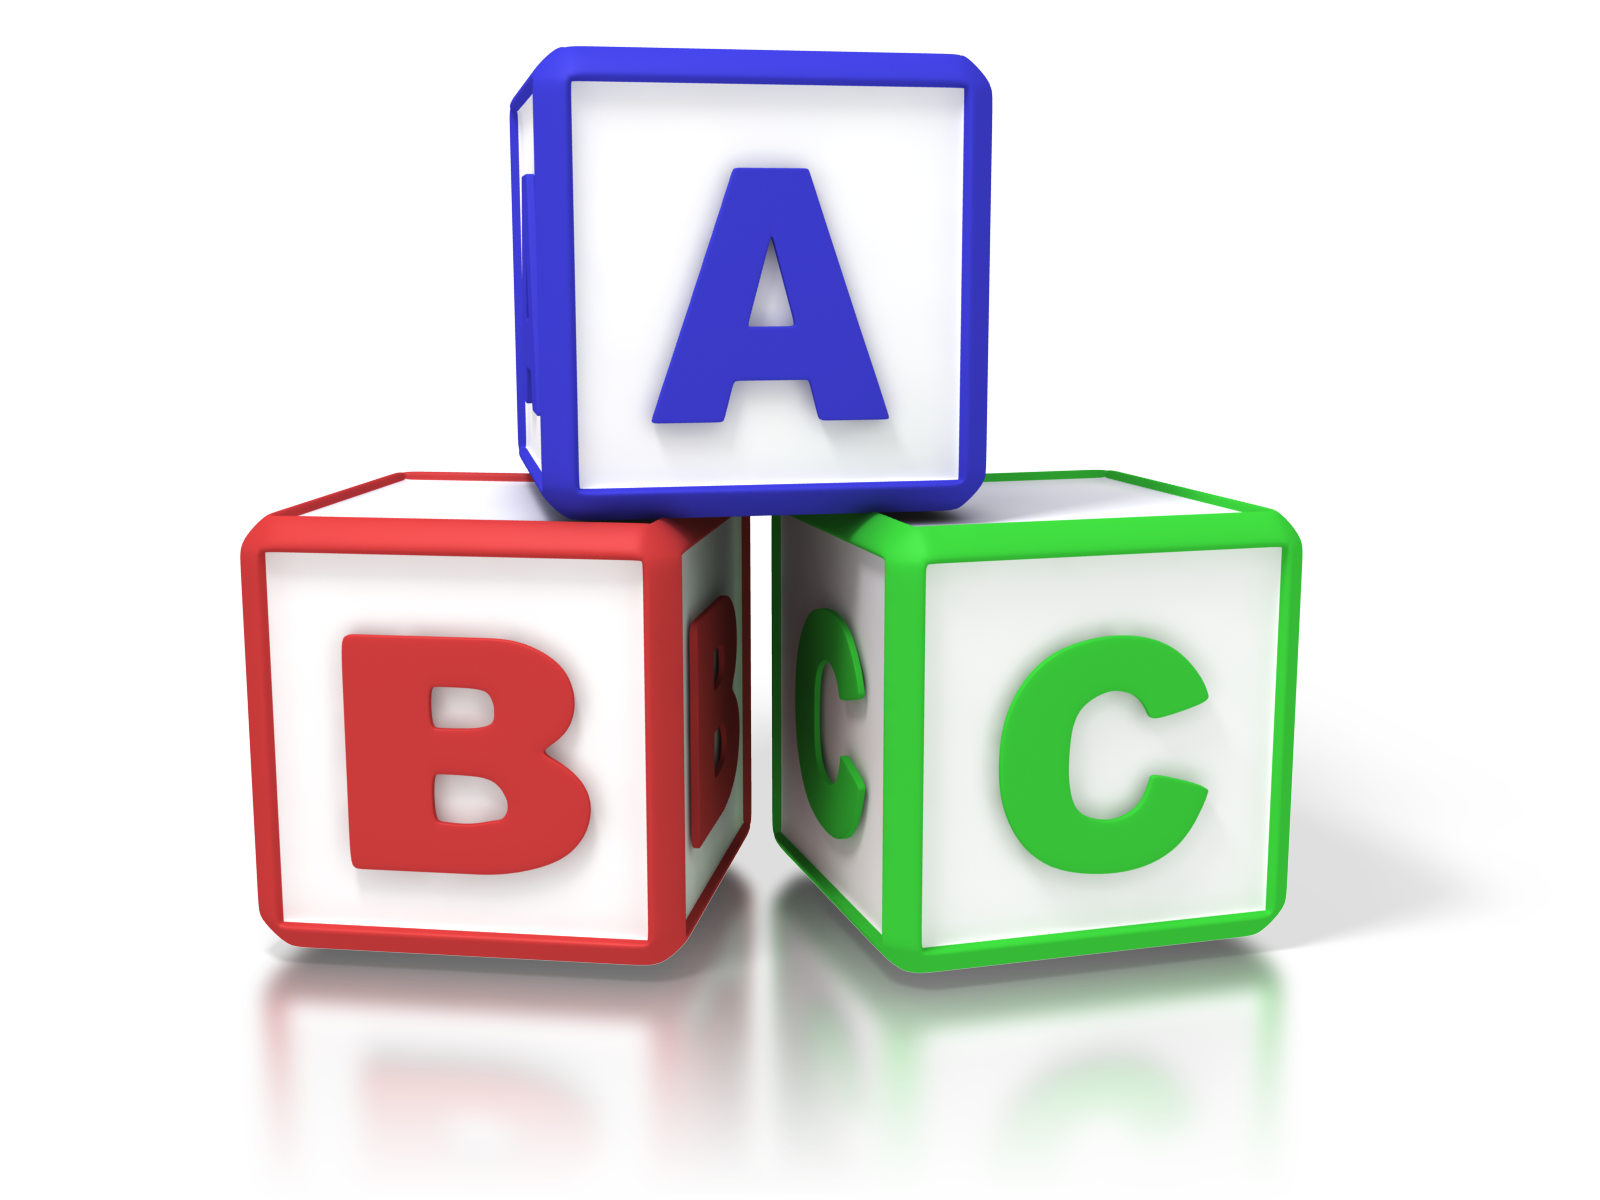 Clipart alphabet blocks png library library To Get Real Change Figure Out The ABCs | SeytLines png library library